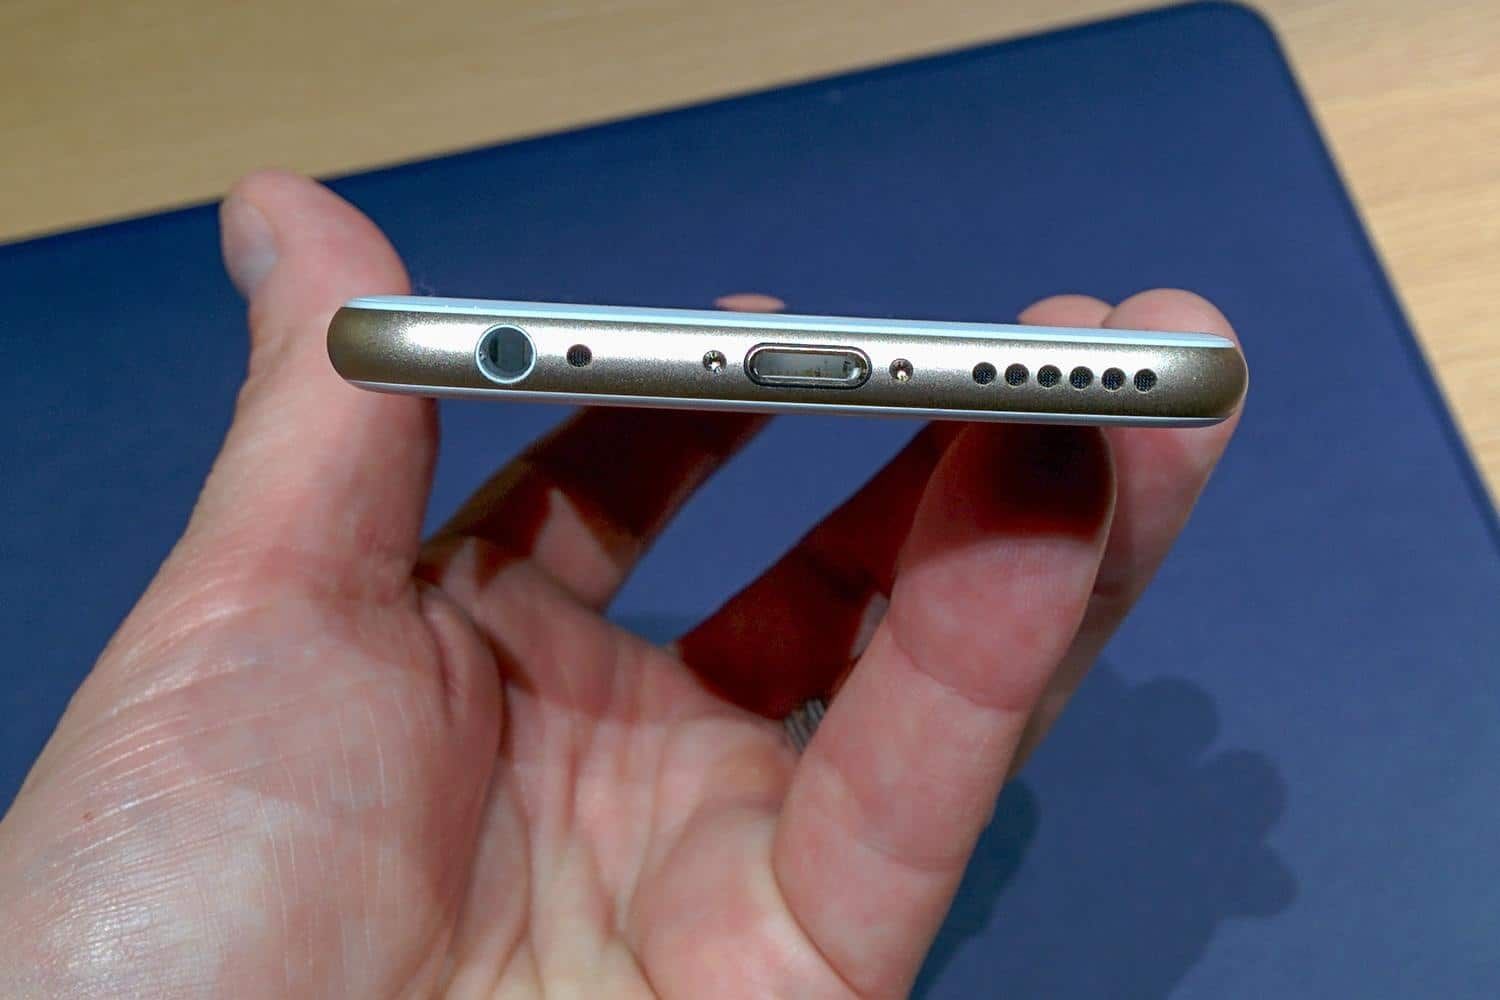 apple-iphone-6-hands-on-19-1500x1000